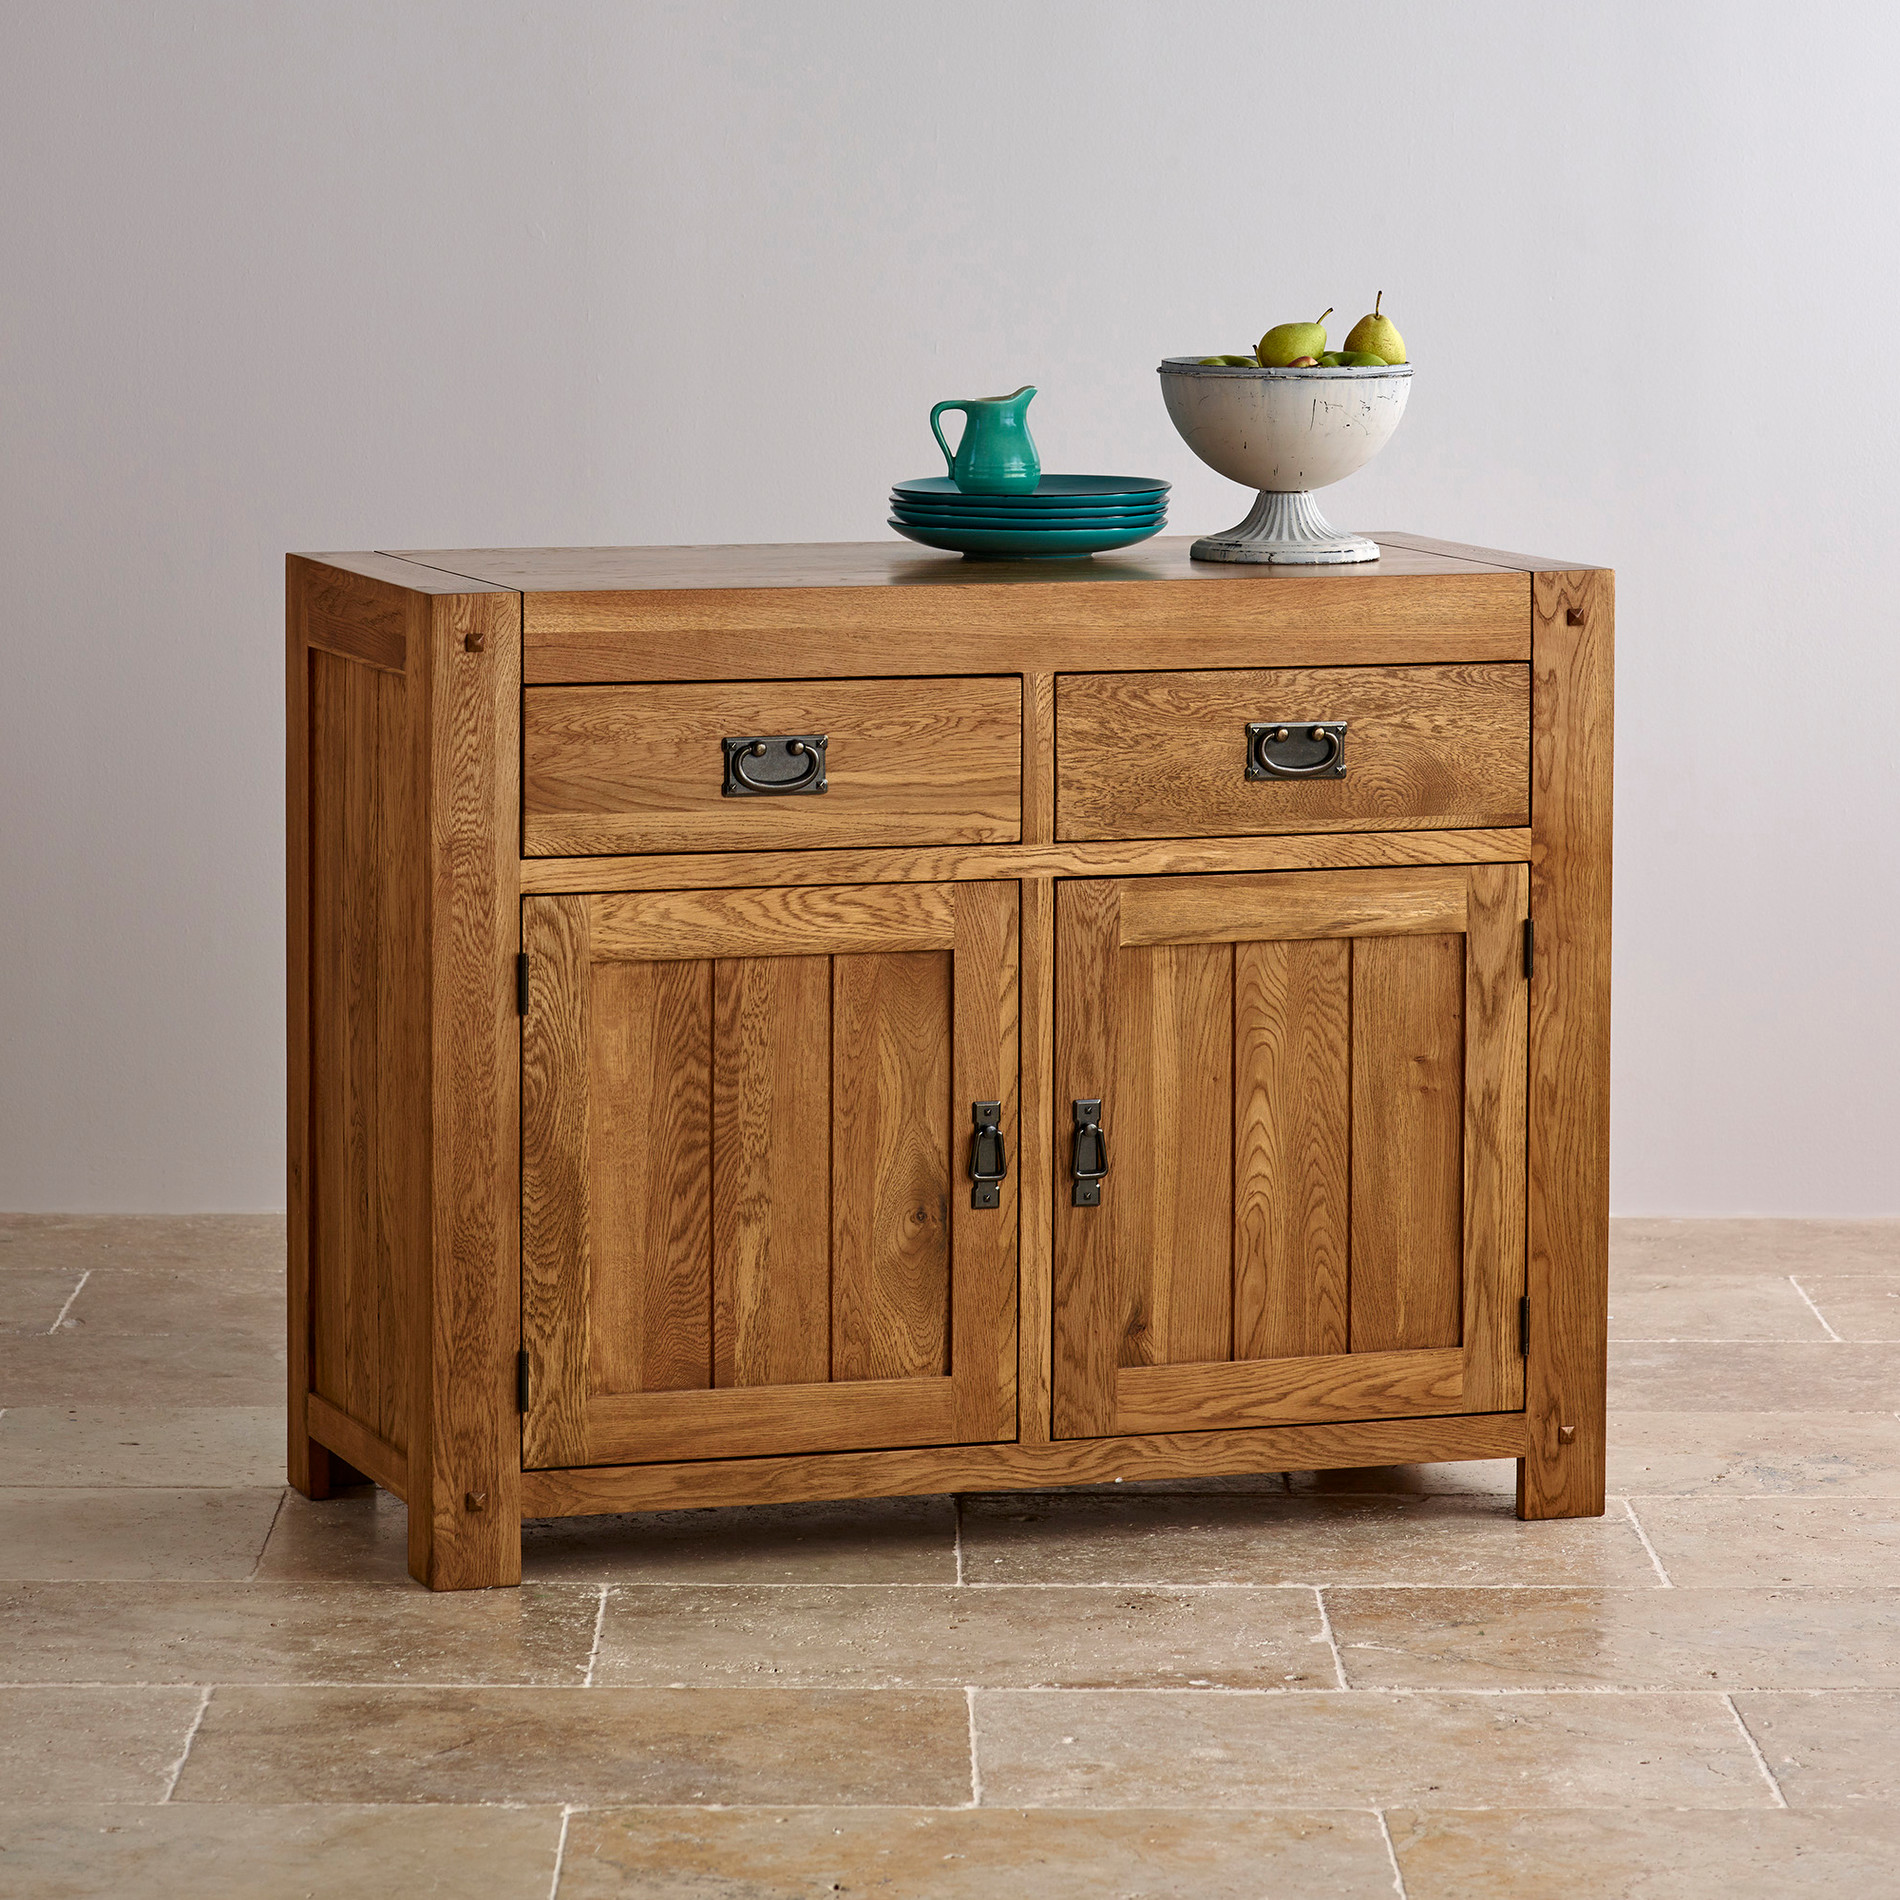 Quercus rustic solid oak small sideboard oak furniture land for Oak furniture land